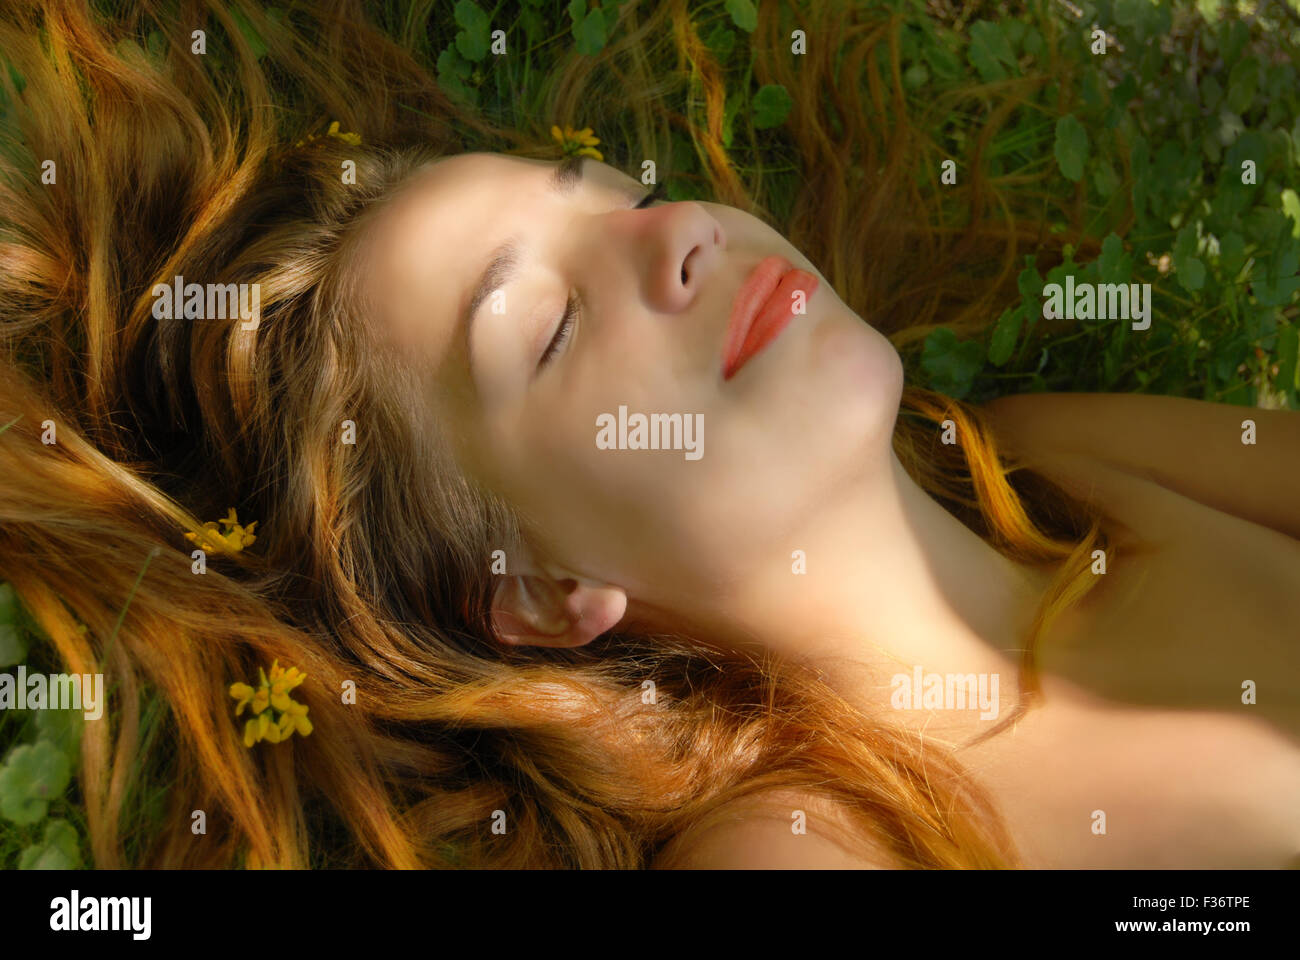 blonde girl laying in the grass with flowers red lips perfect skin - Stock Image